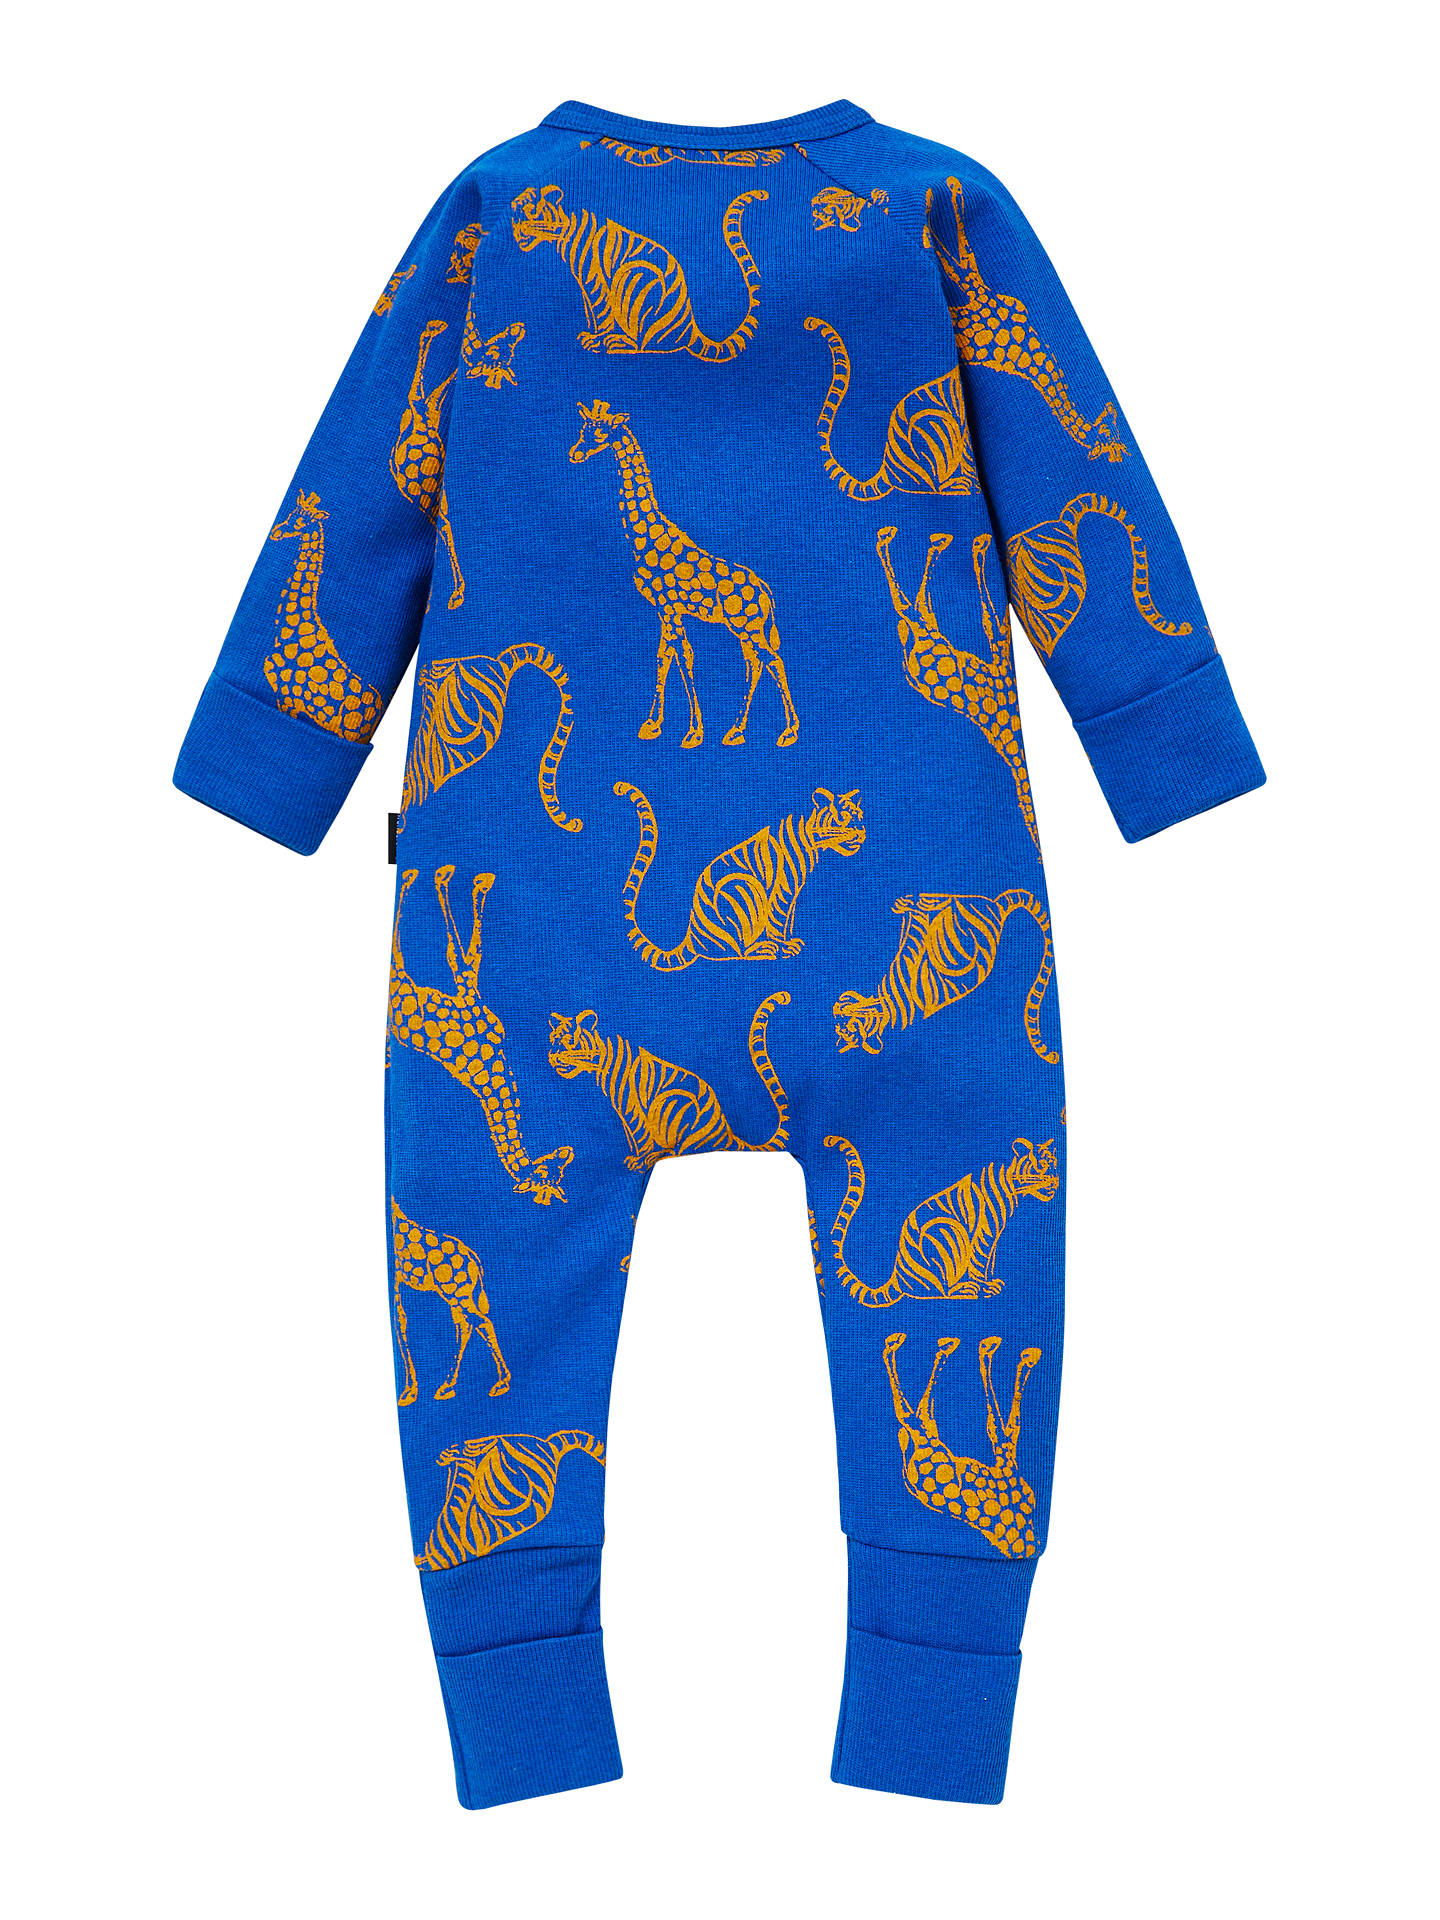 BuyBonds Baby Zippy Jungle Animal Print Wondersuit, Blue, Newborn Online at johnlewis.com